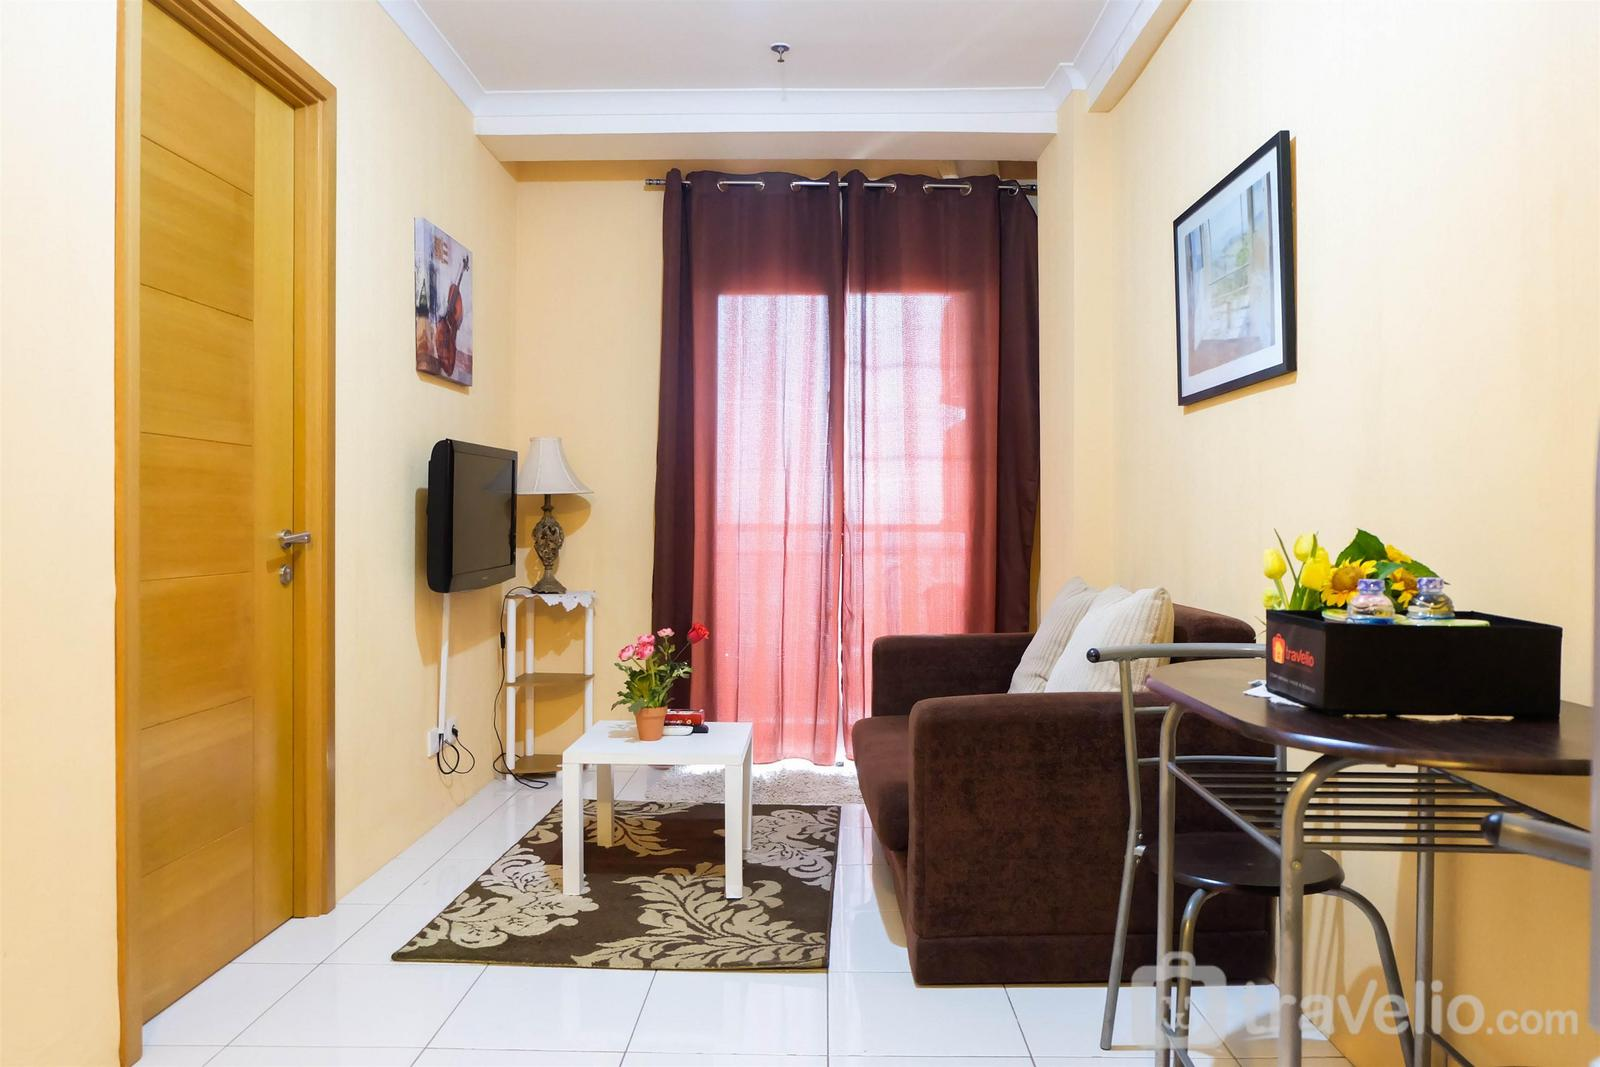 Signature Park Tebet - Prime Location 2BR Signature Park Apartment By Travelio